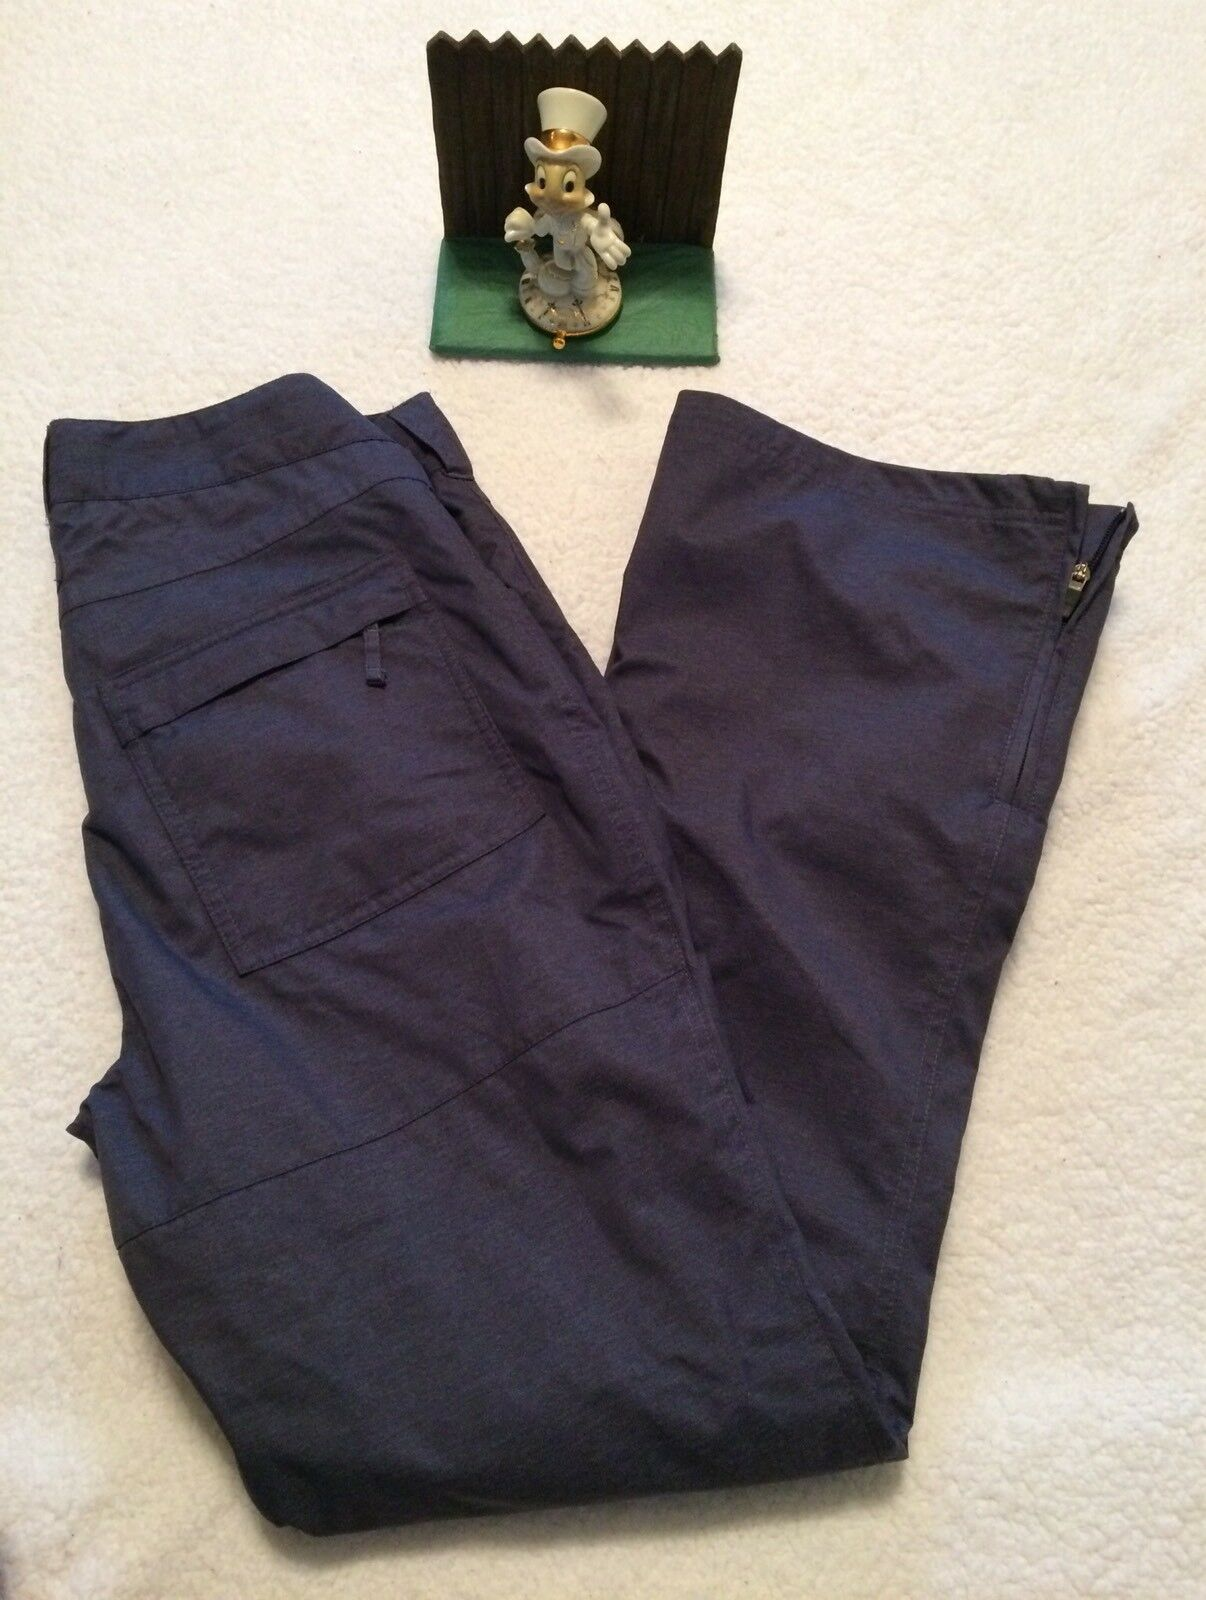 Sims Womens Snowboard Pants NWOT Size Medium Ski Pants.. New Display blueee